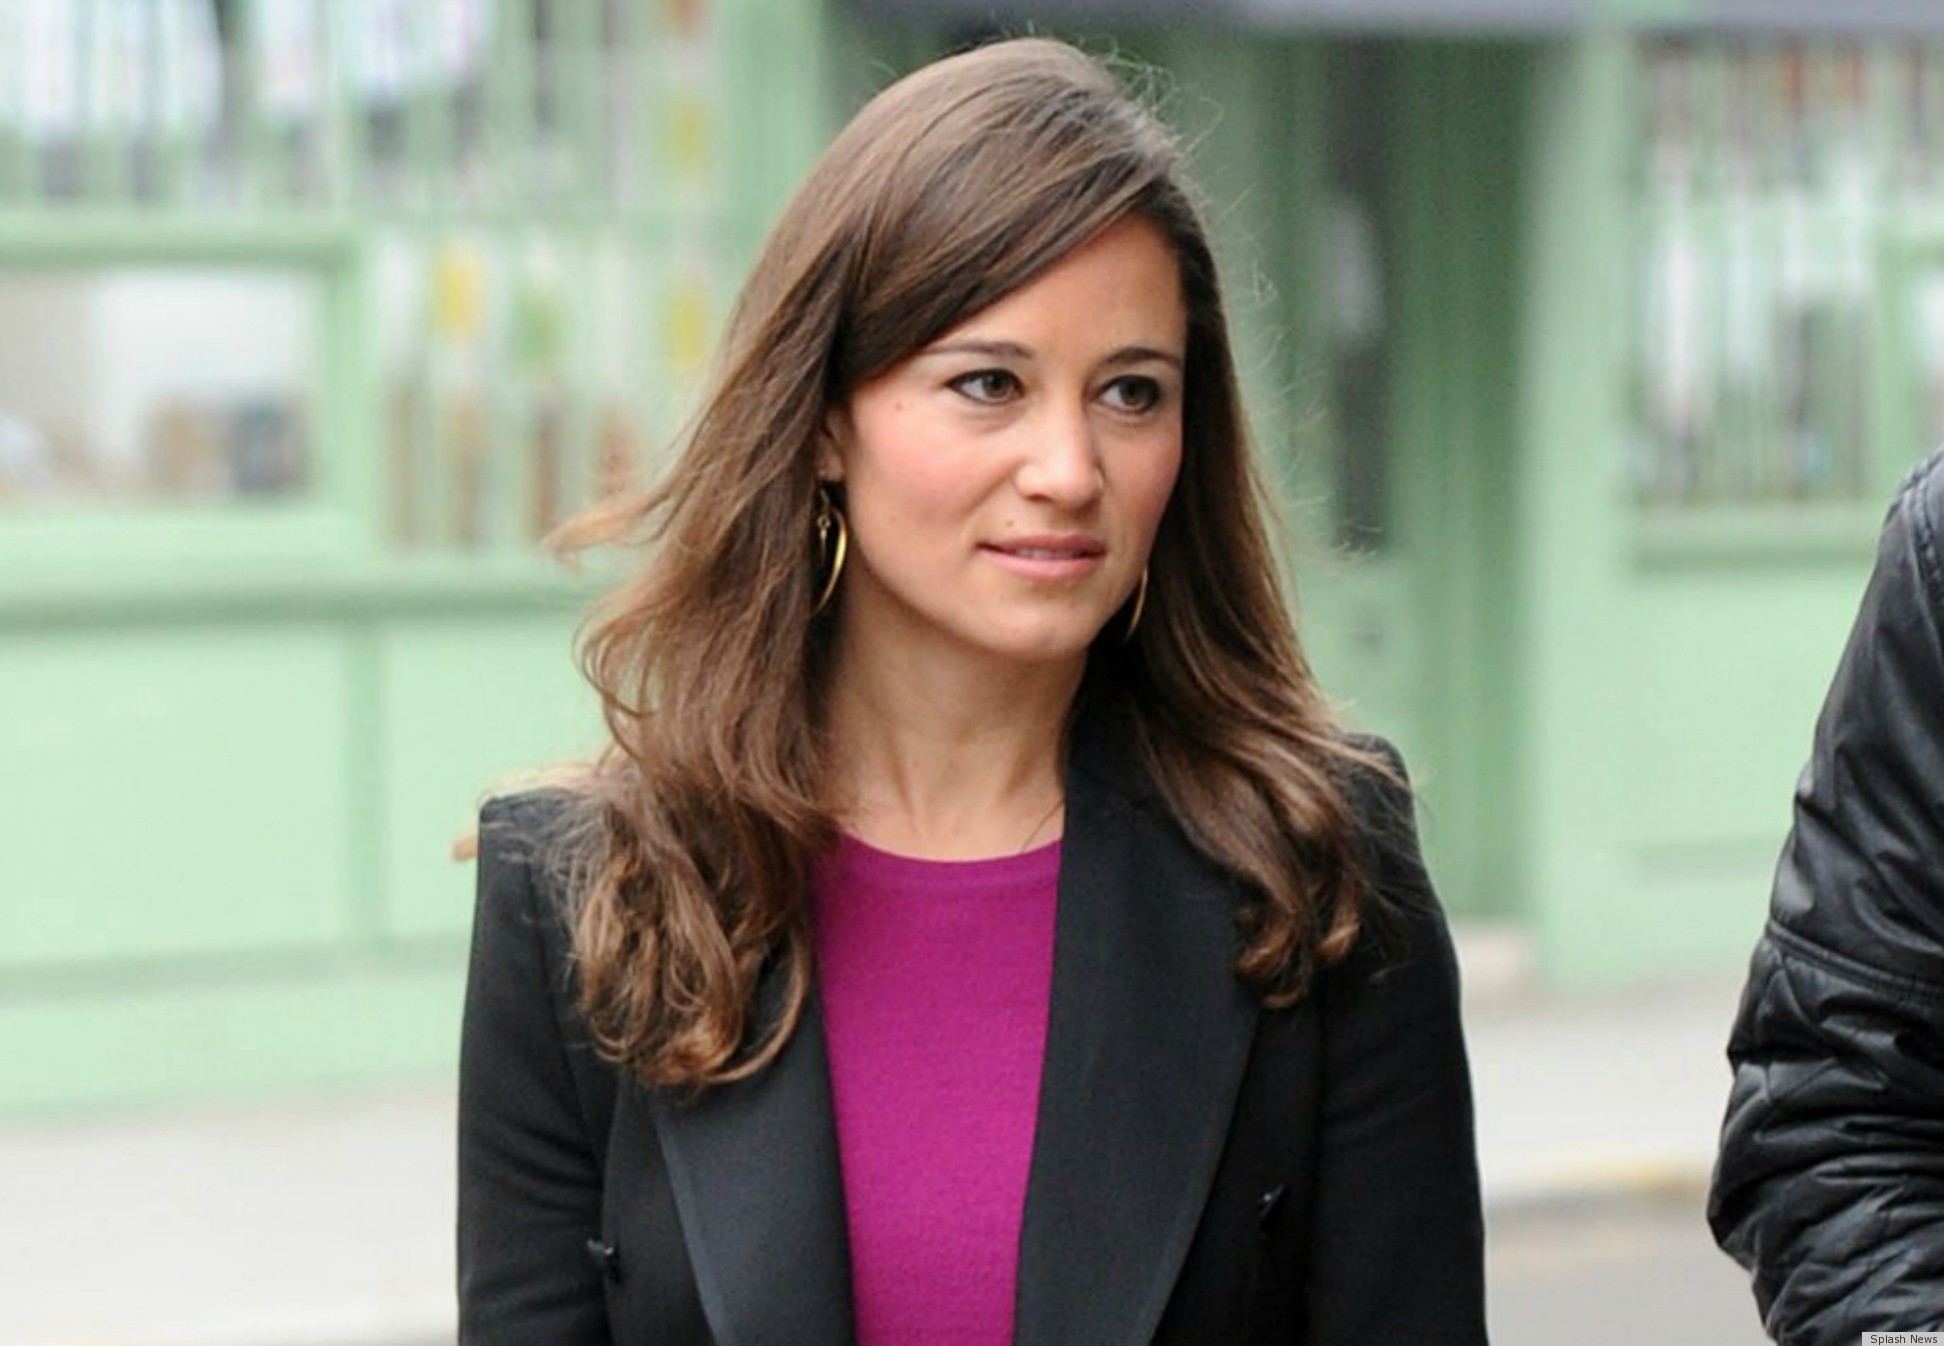 pippa passes black singles Pippa awakes and faces the world outside with a song a24 team for drama 'last black man in san francisco' pippa passes or, the song of conscience.